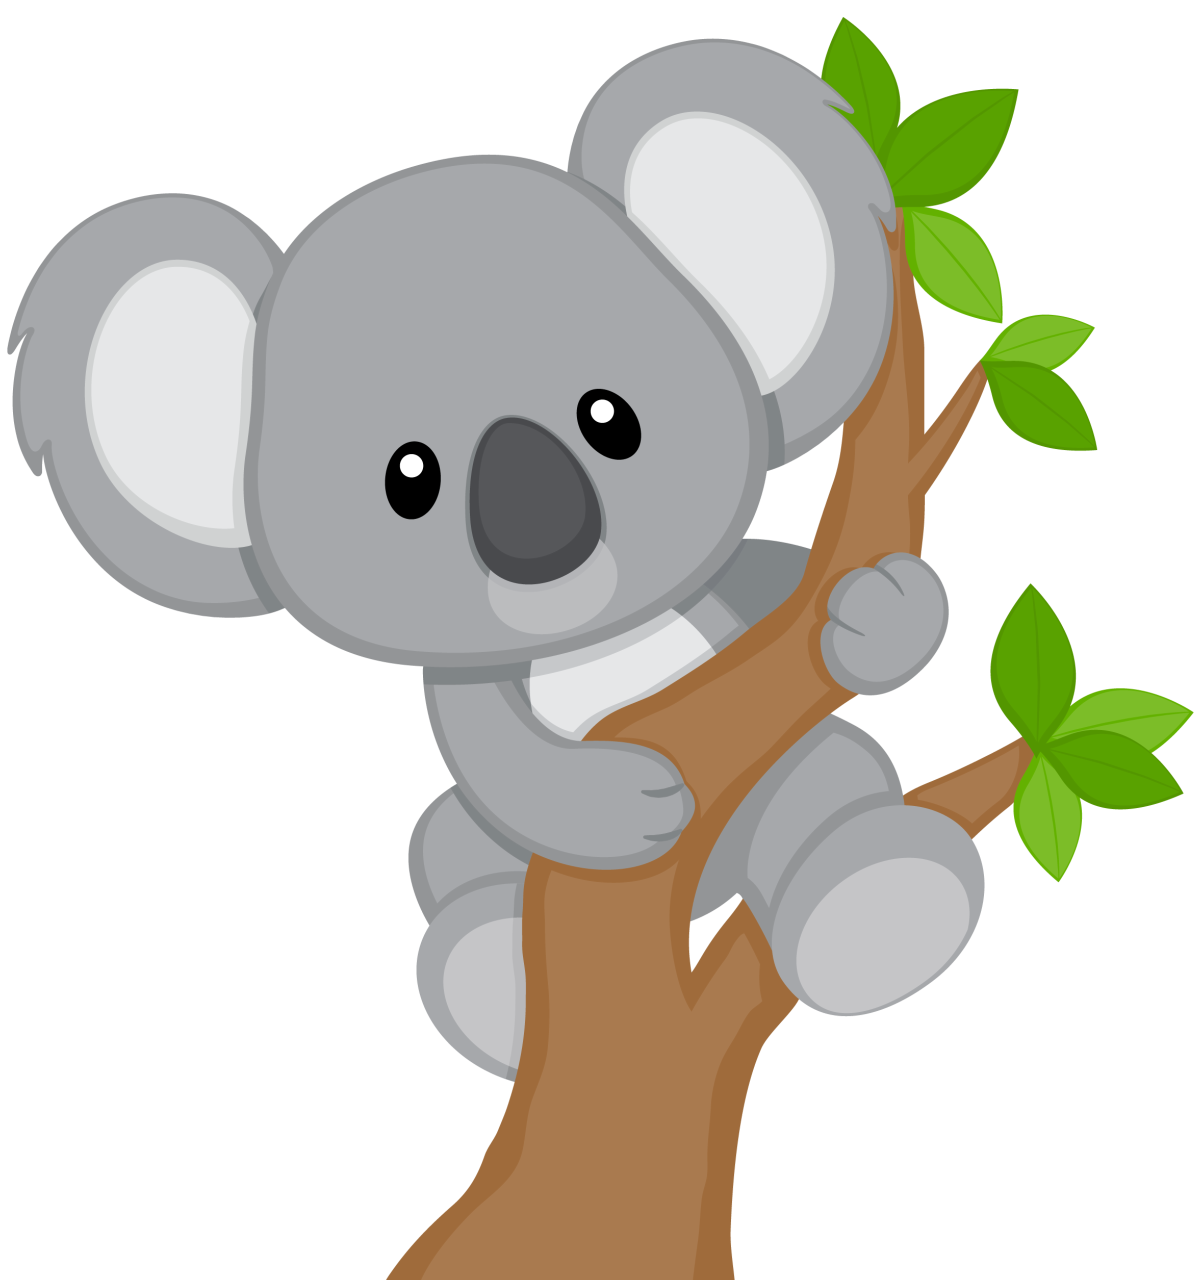 Png images of koala bear